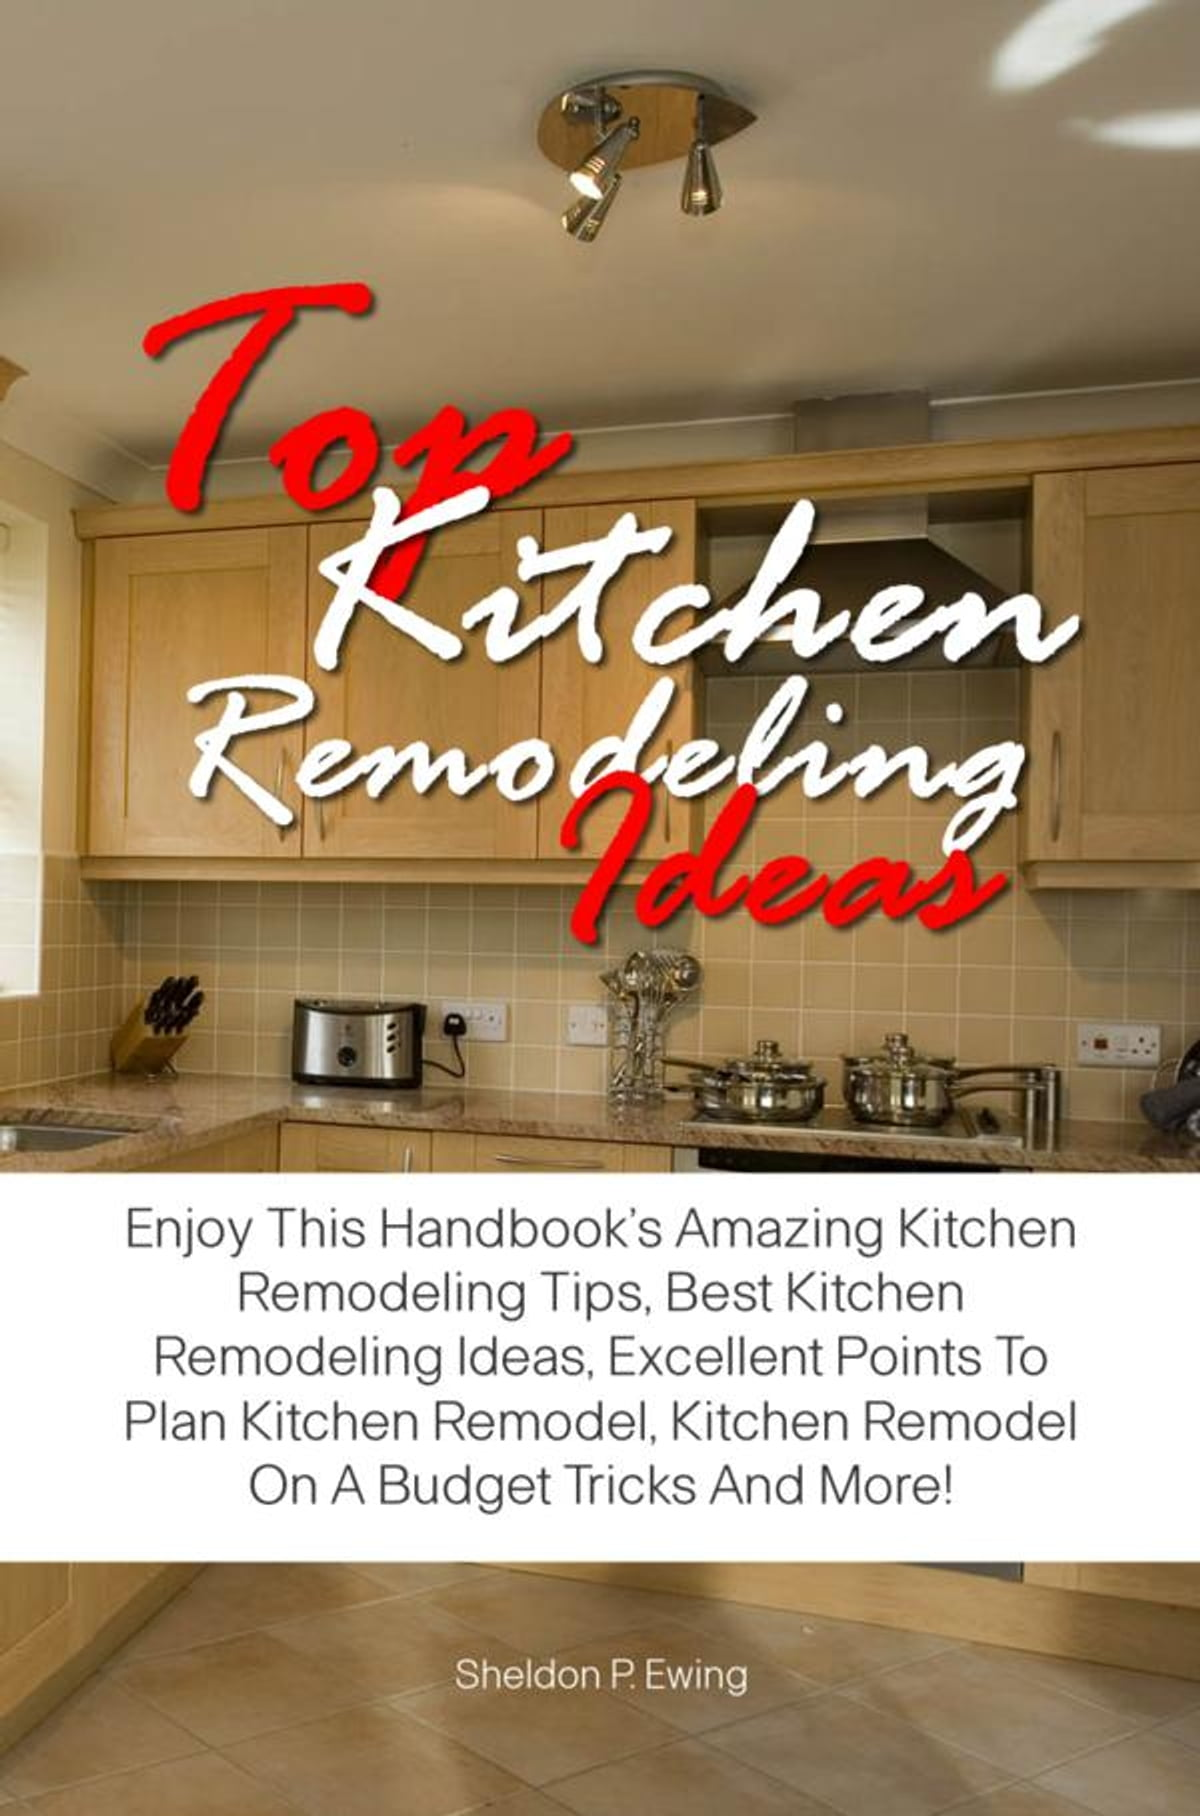 Top Kitchen Remodeling Ideas Ebook By Sheldon P Ewing Rakuten Kobo